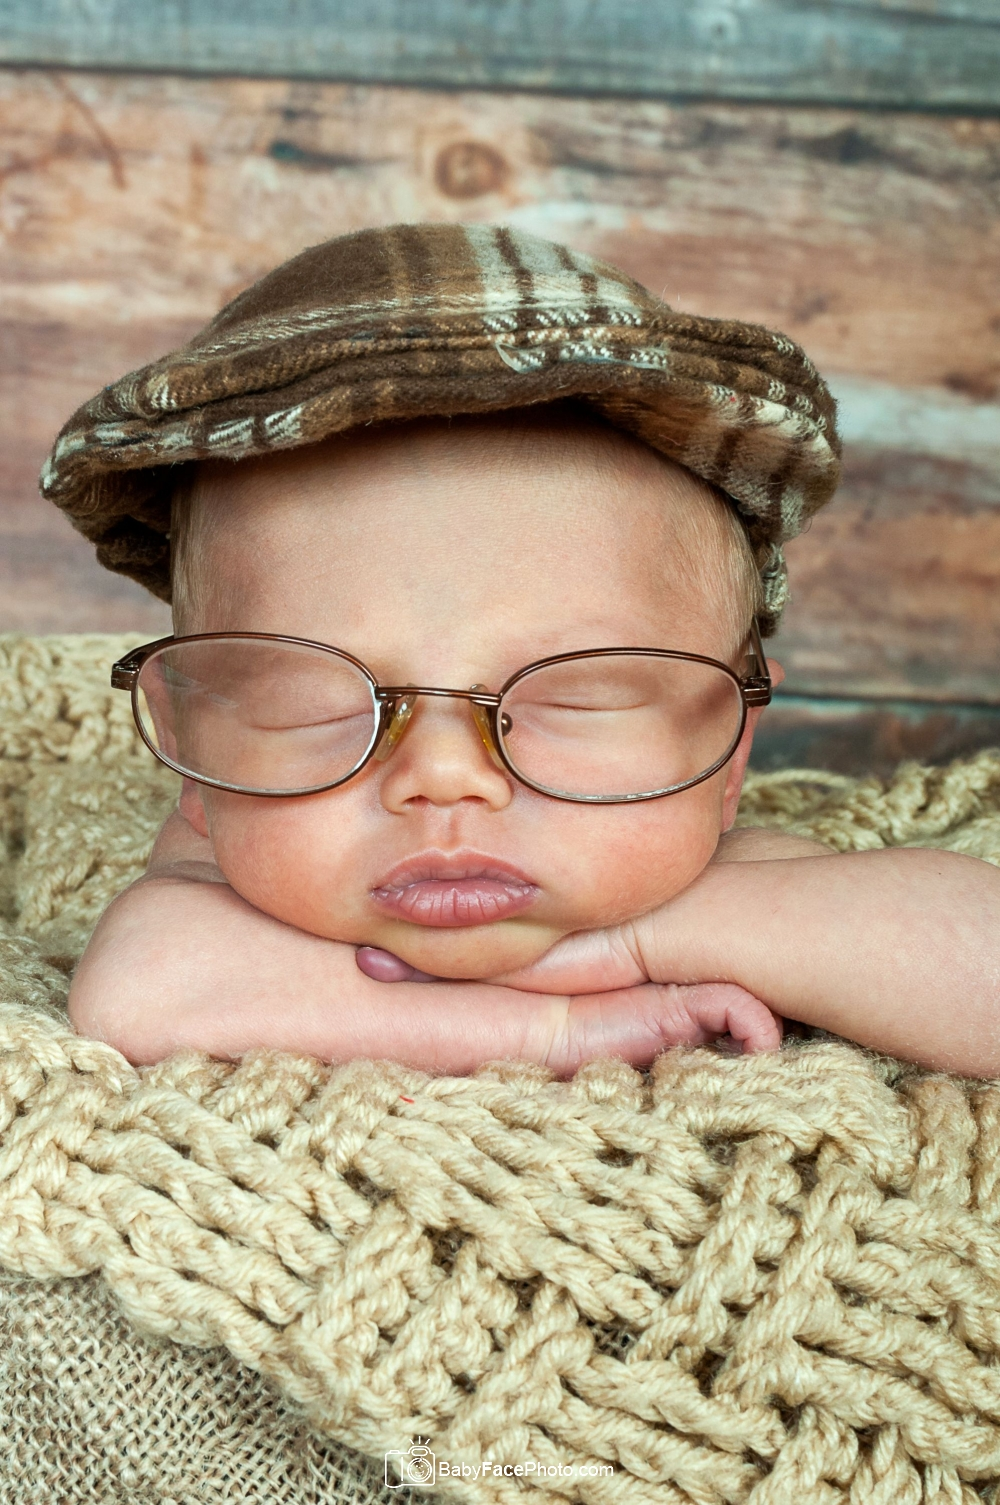 newborn boy wearing glasses and cap